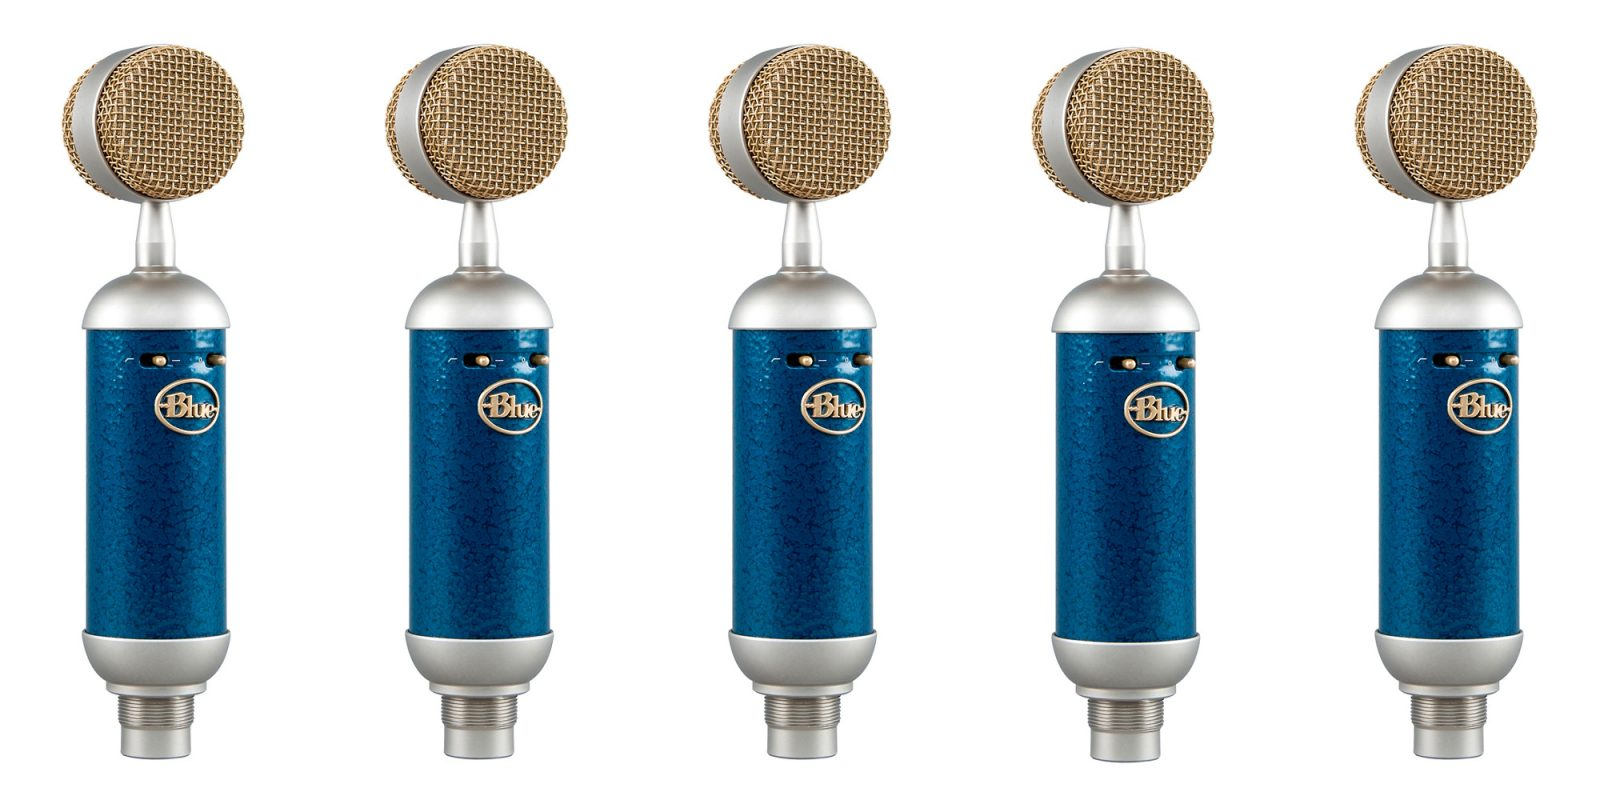 Blue's Spark SL Large-Diaphragm Condenser Mic is $140 (Today only, Reg. $200)